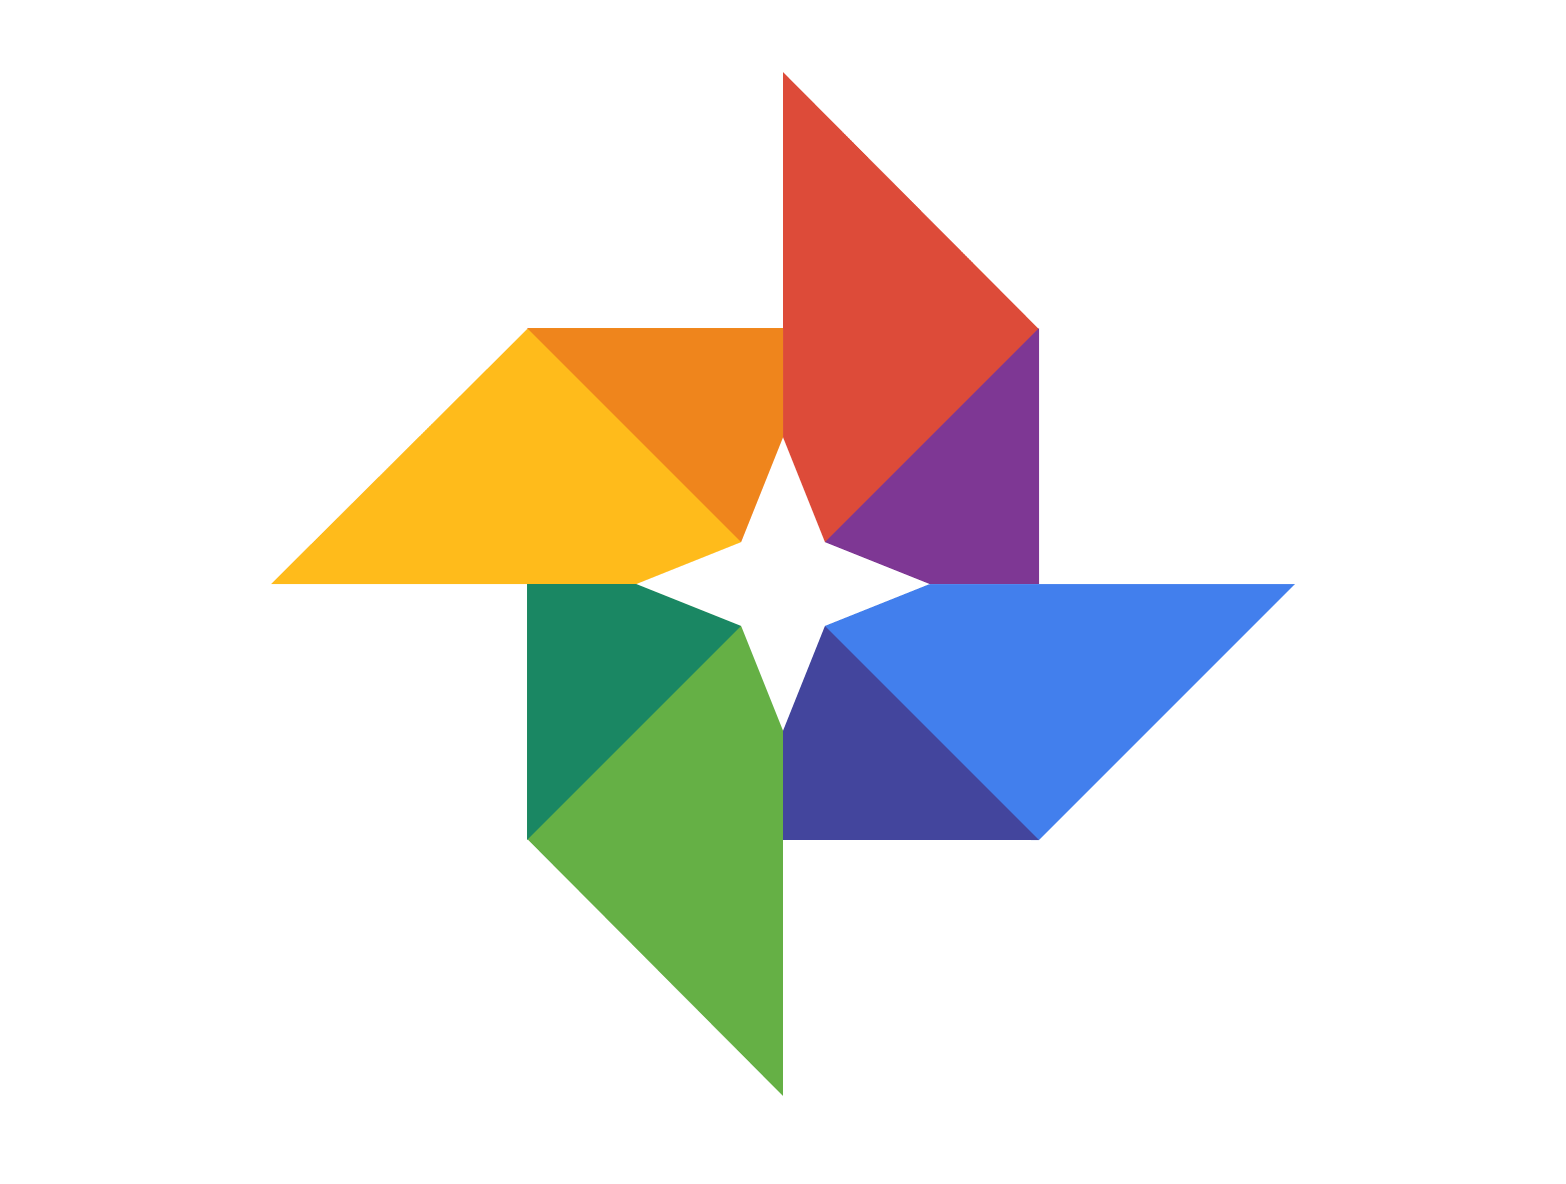 12 Picasa 3 Icon Images